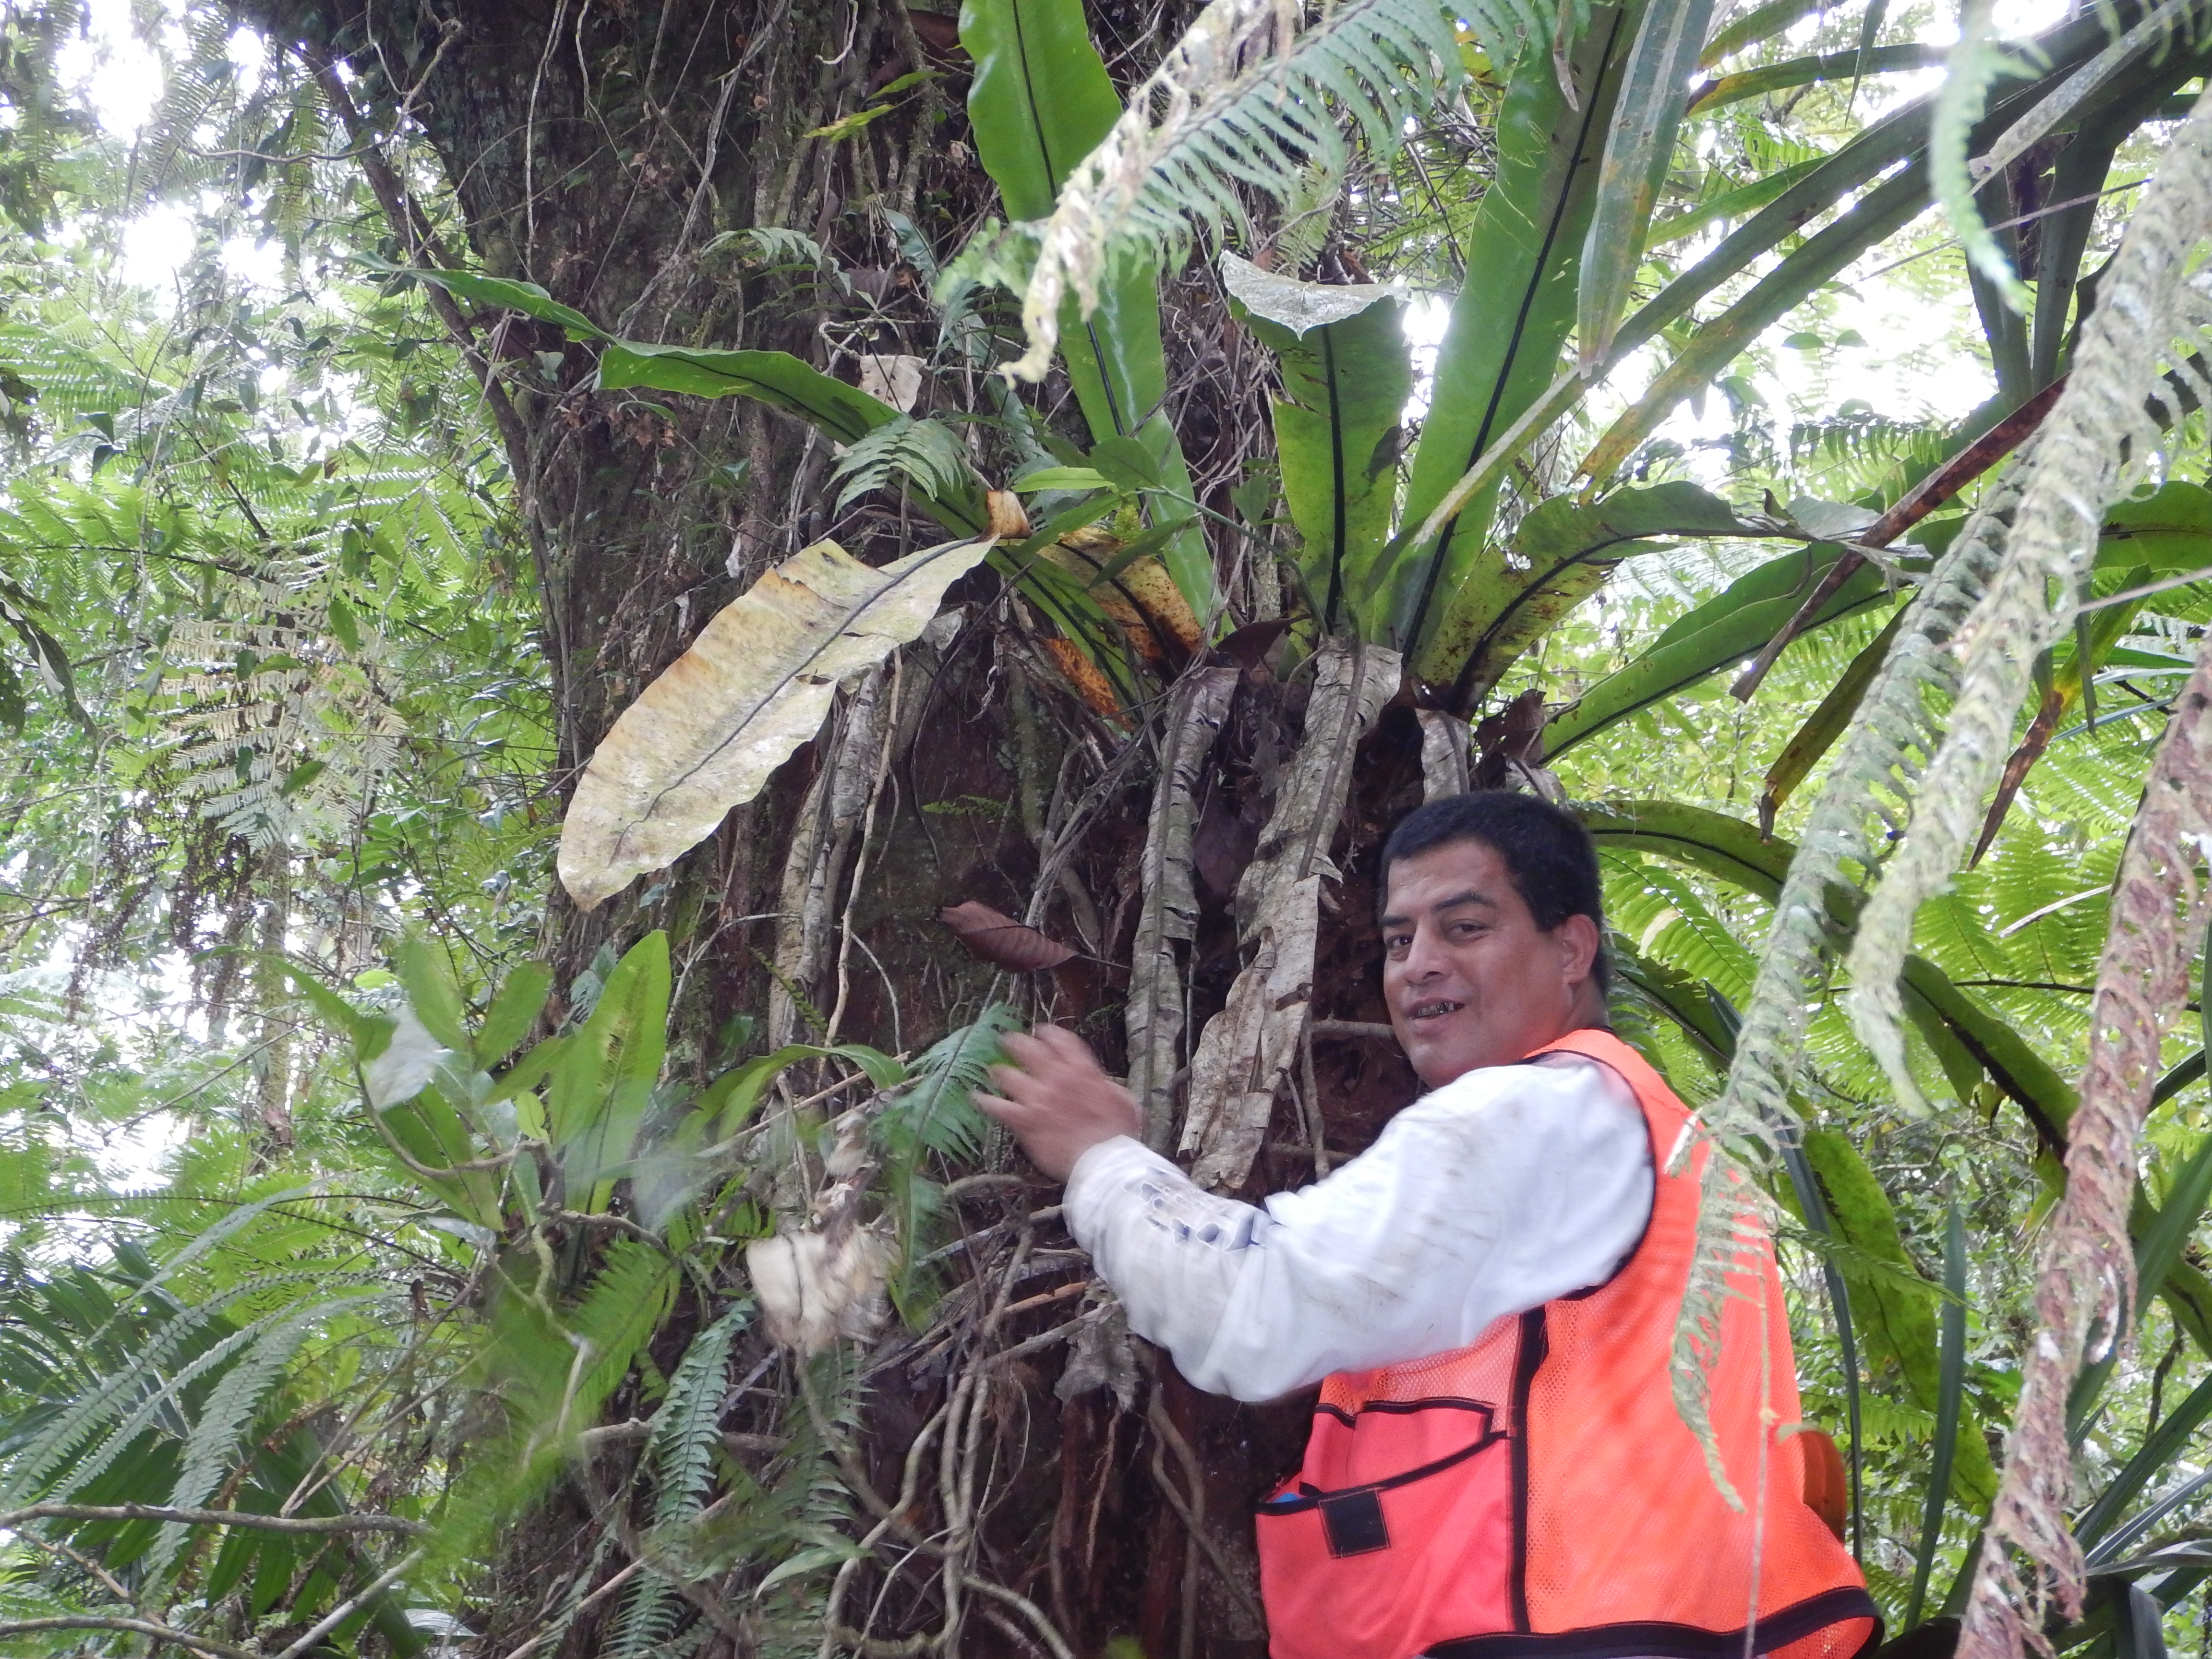 Eugene Eperiam assesses the bole of a leafy tree covered in epiphytes to identify the best place to measure the diameter.